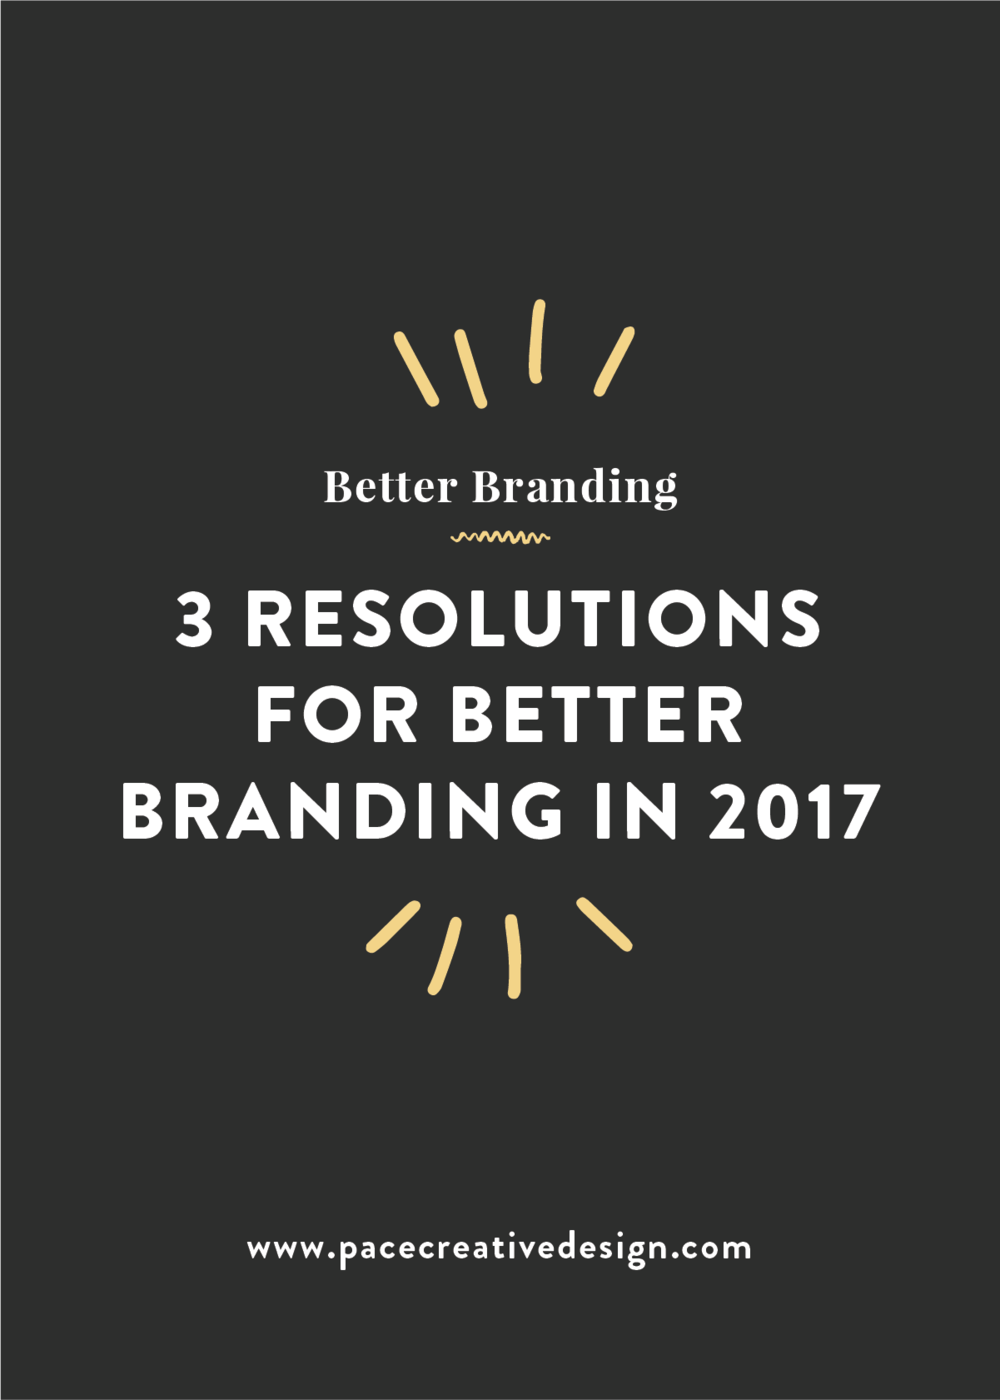 3 Resolutions for Better Branding in 2017 | Pace Creative Design Studio